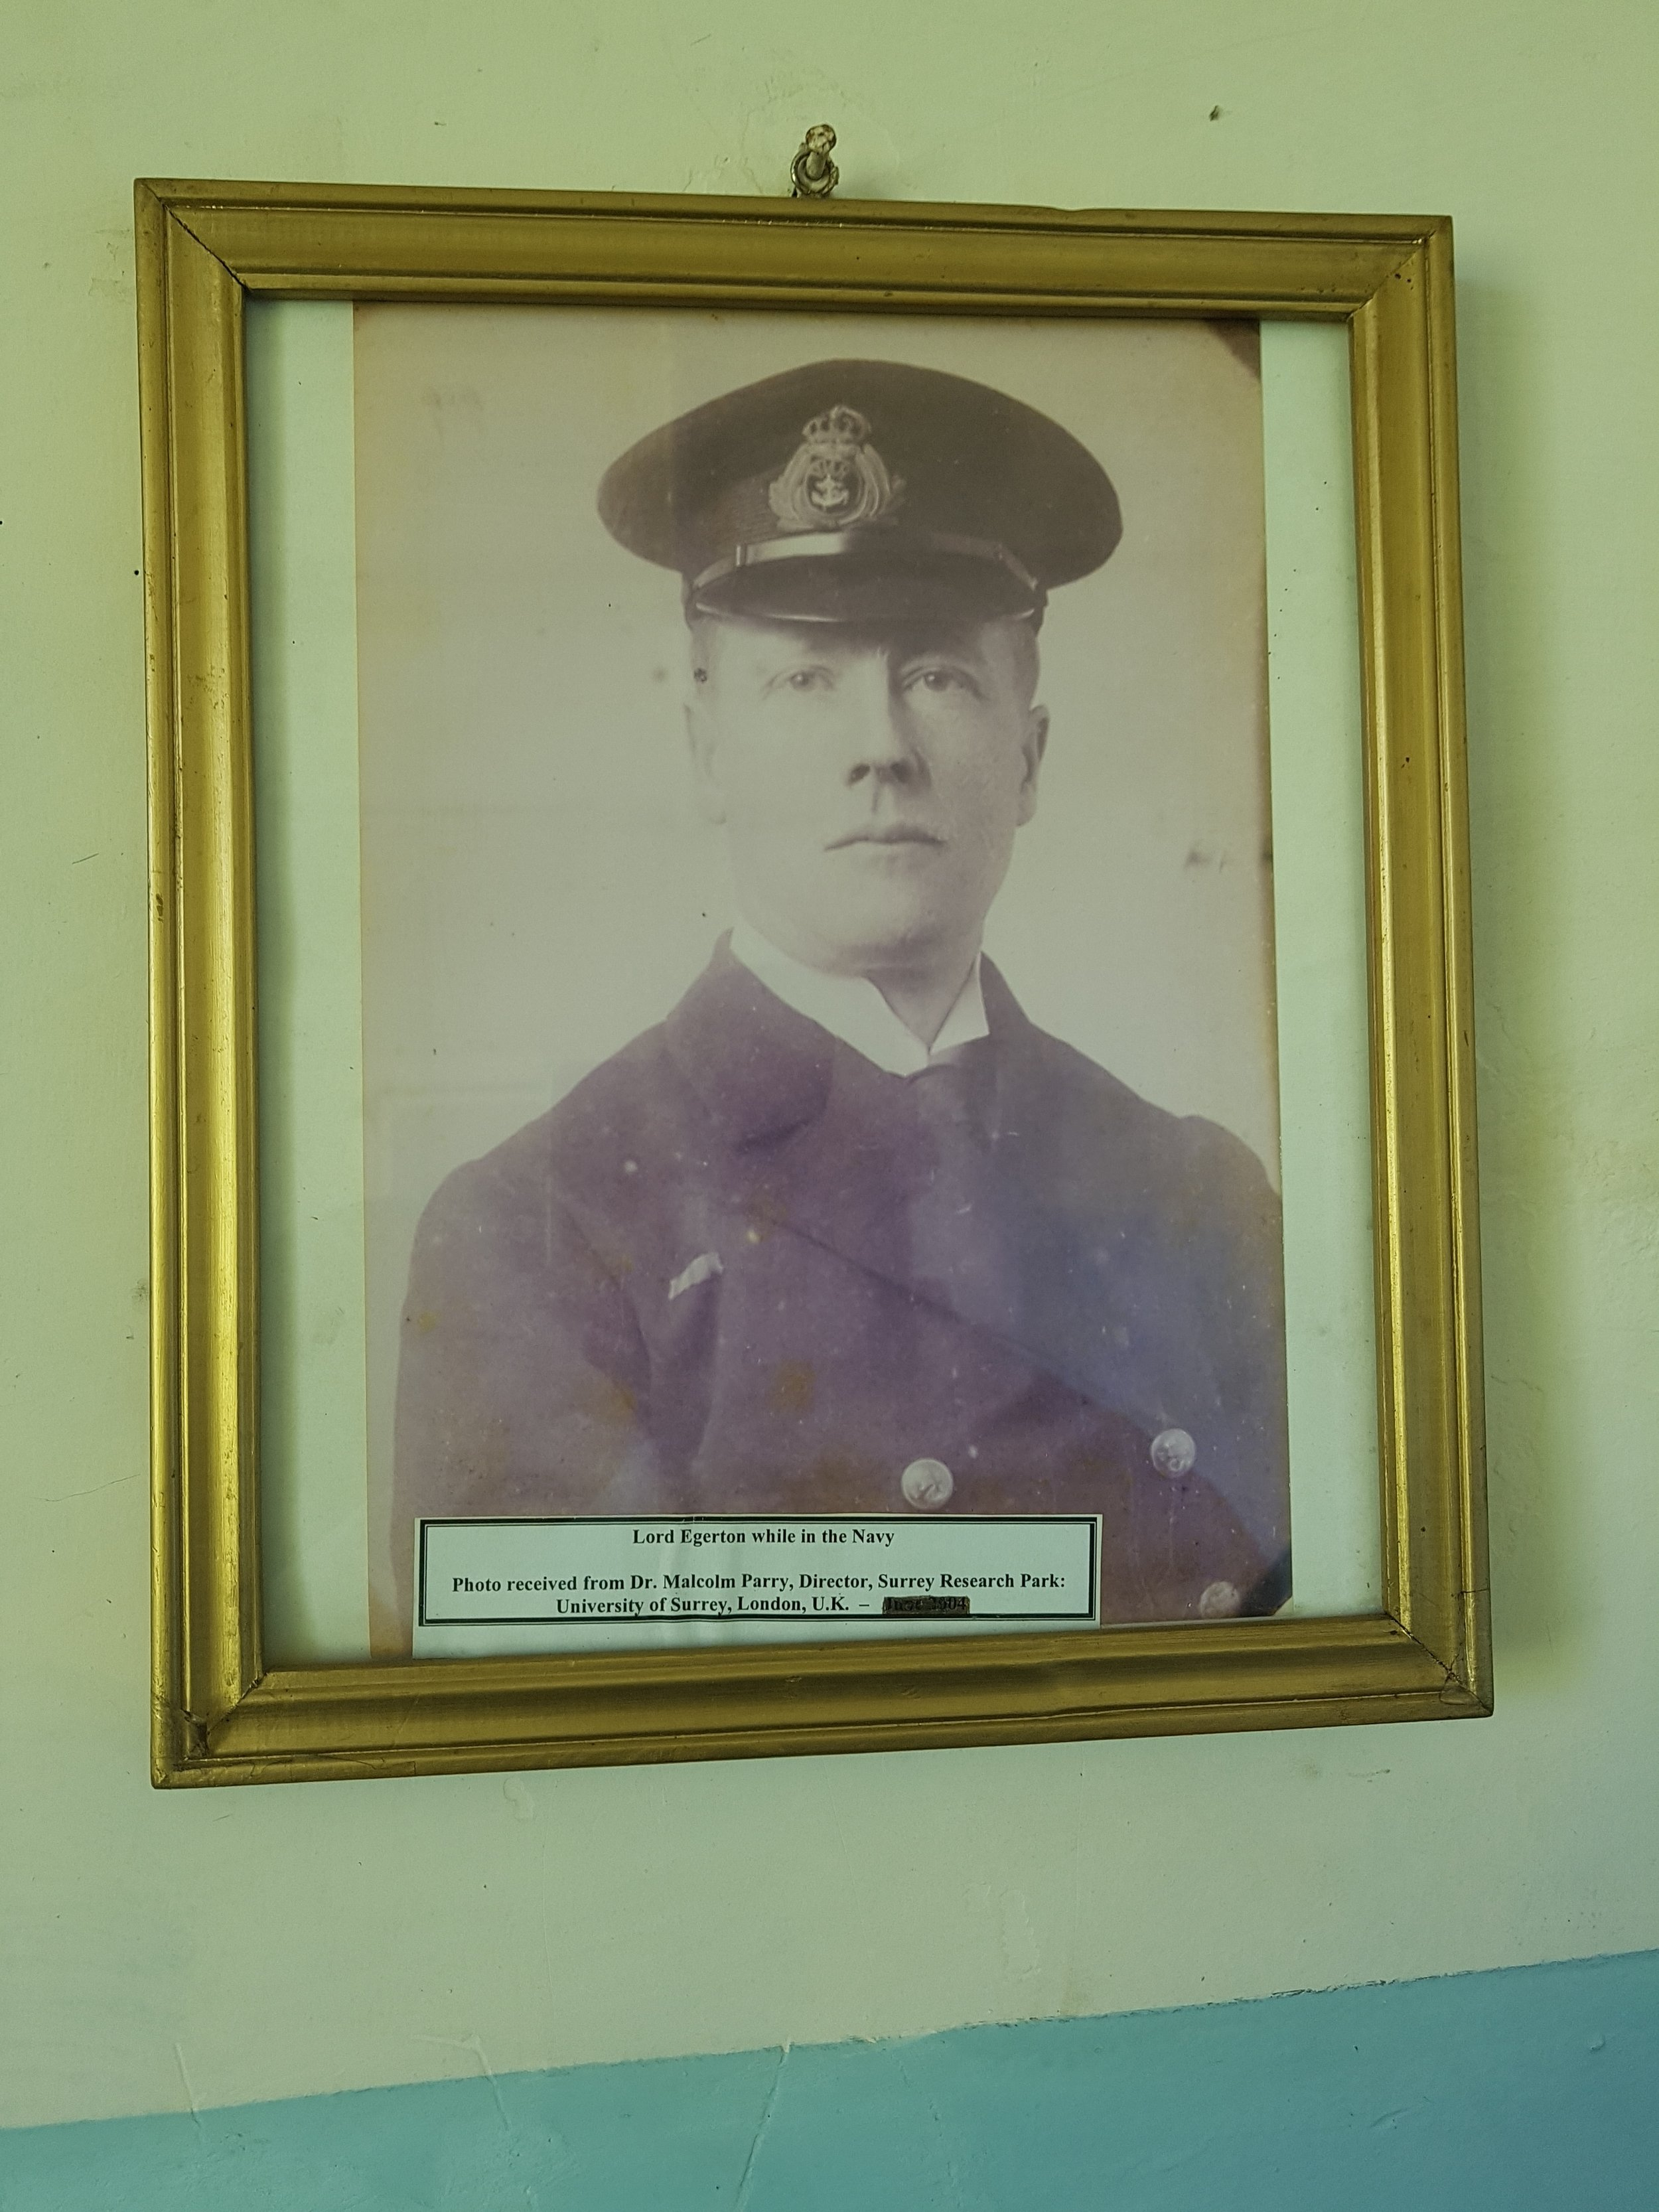 Lord Egerton while in the Navy.